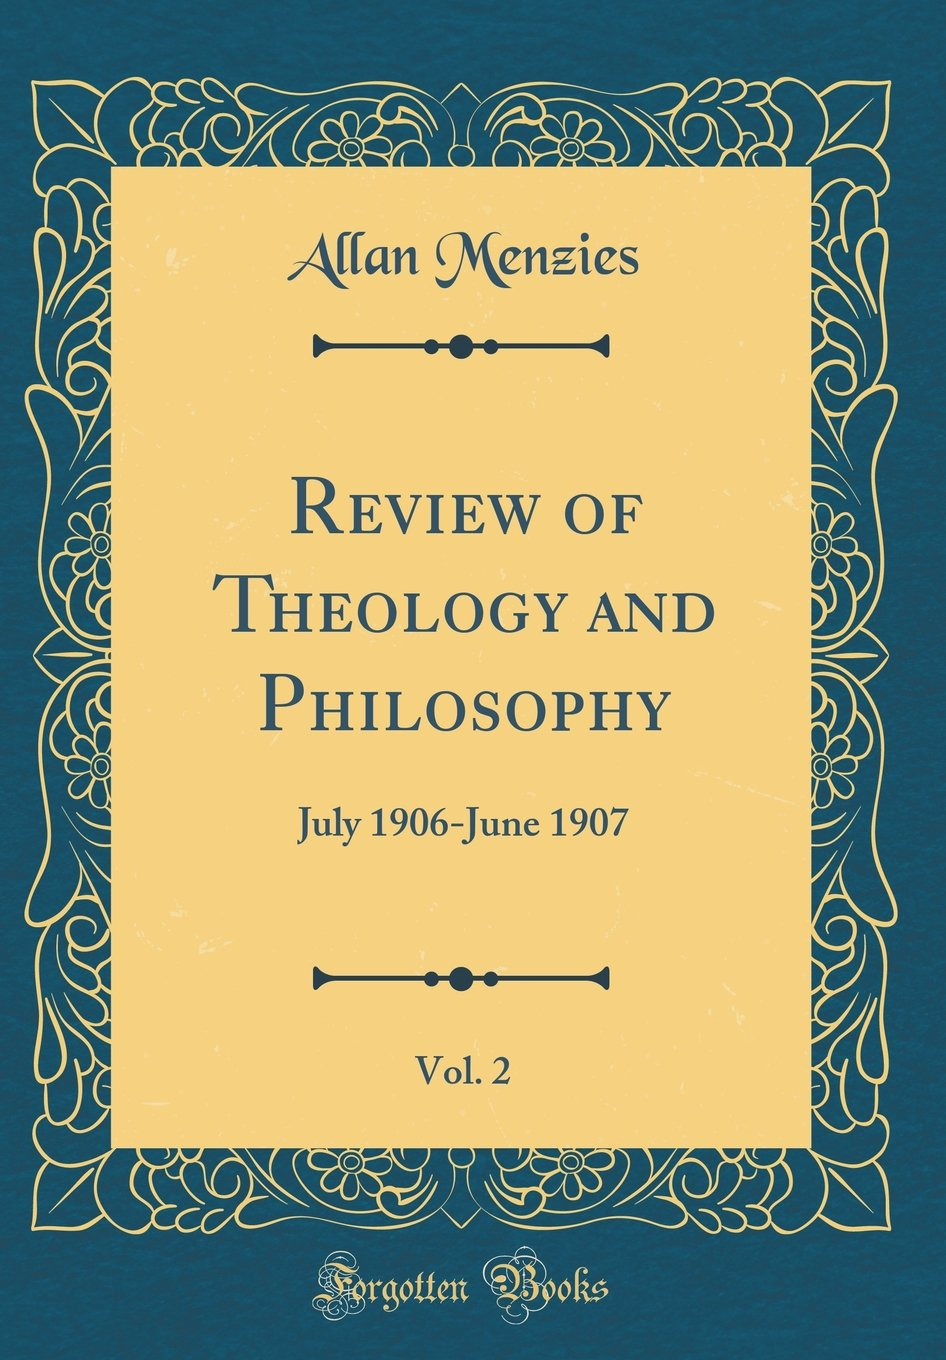 Review of Theology and Philosophy, Vol. 2: July 1906-June 1907 (Classic Reprint) pdf